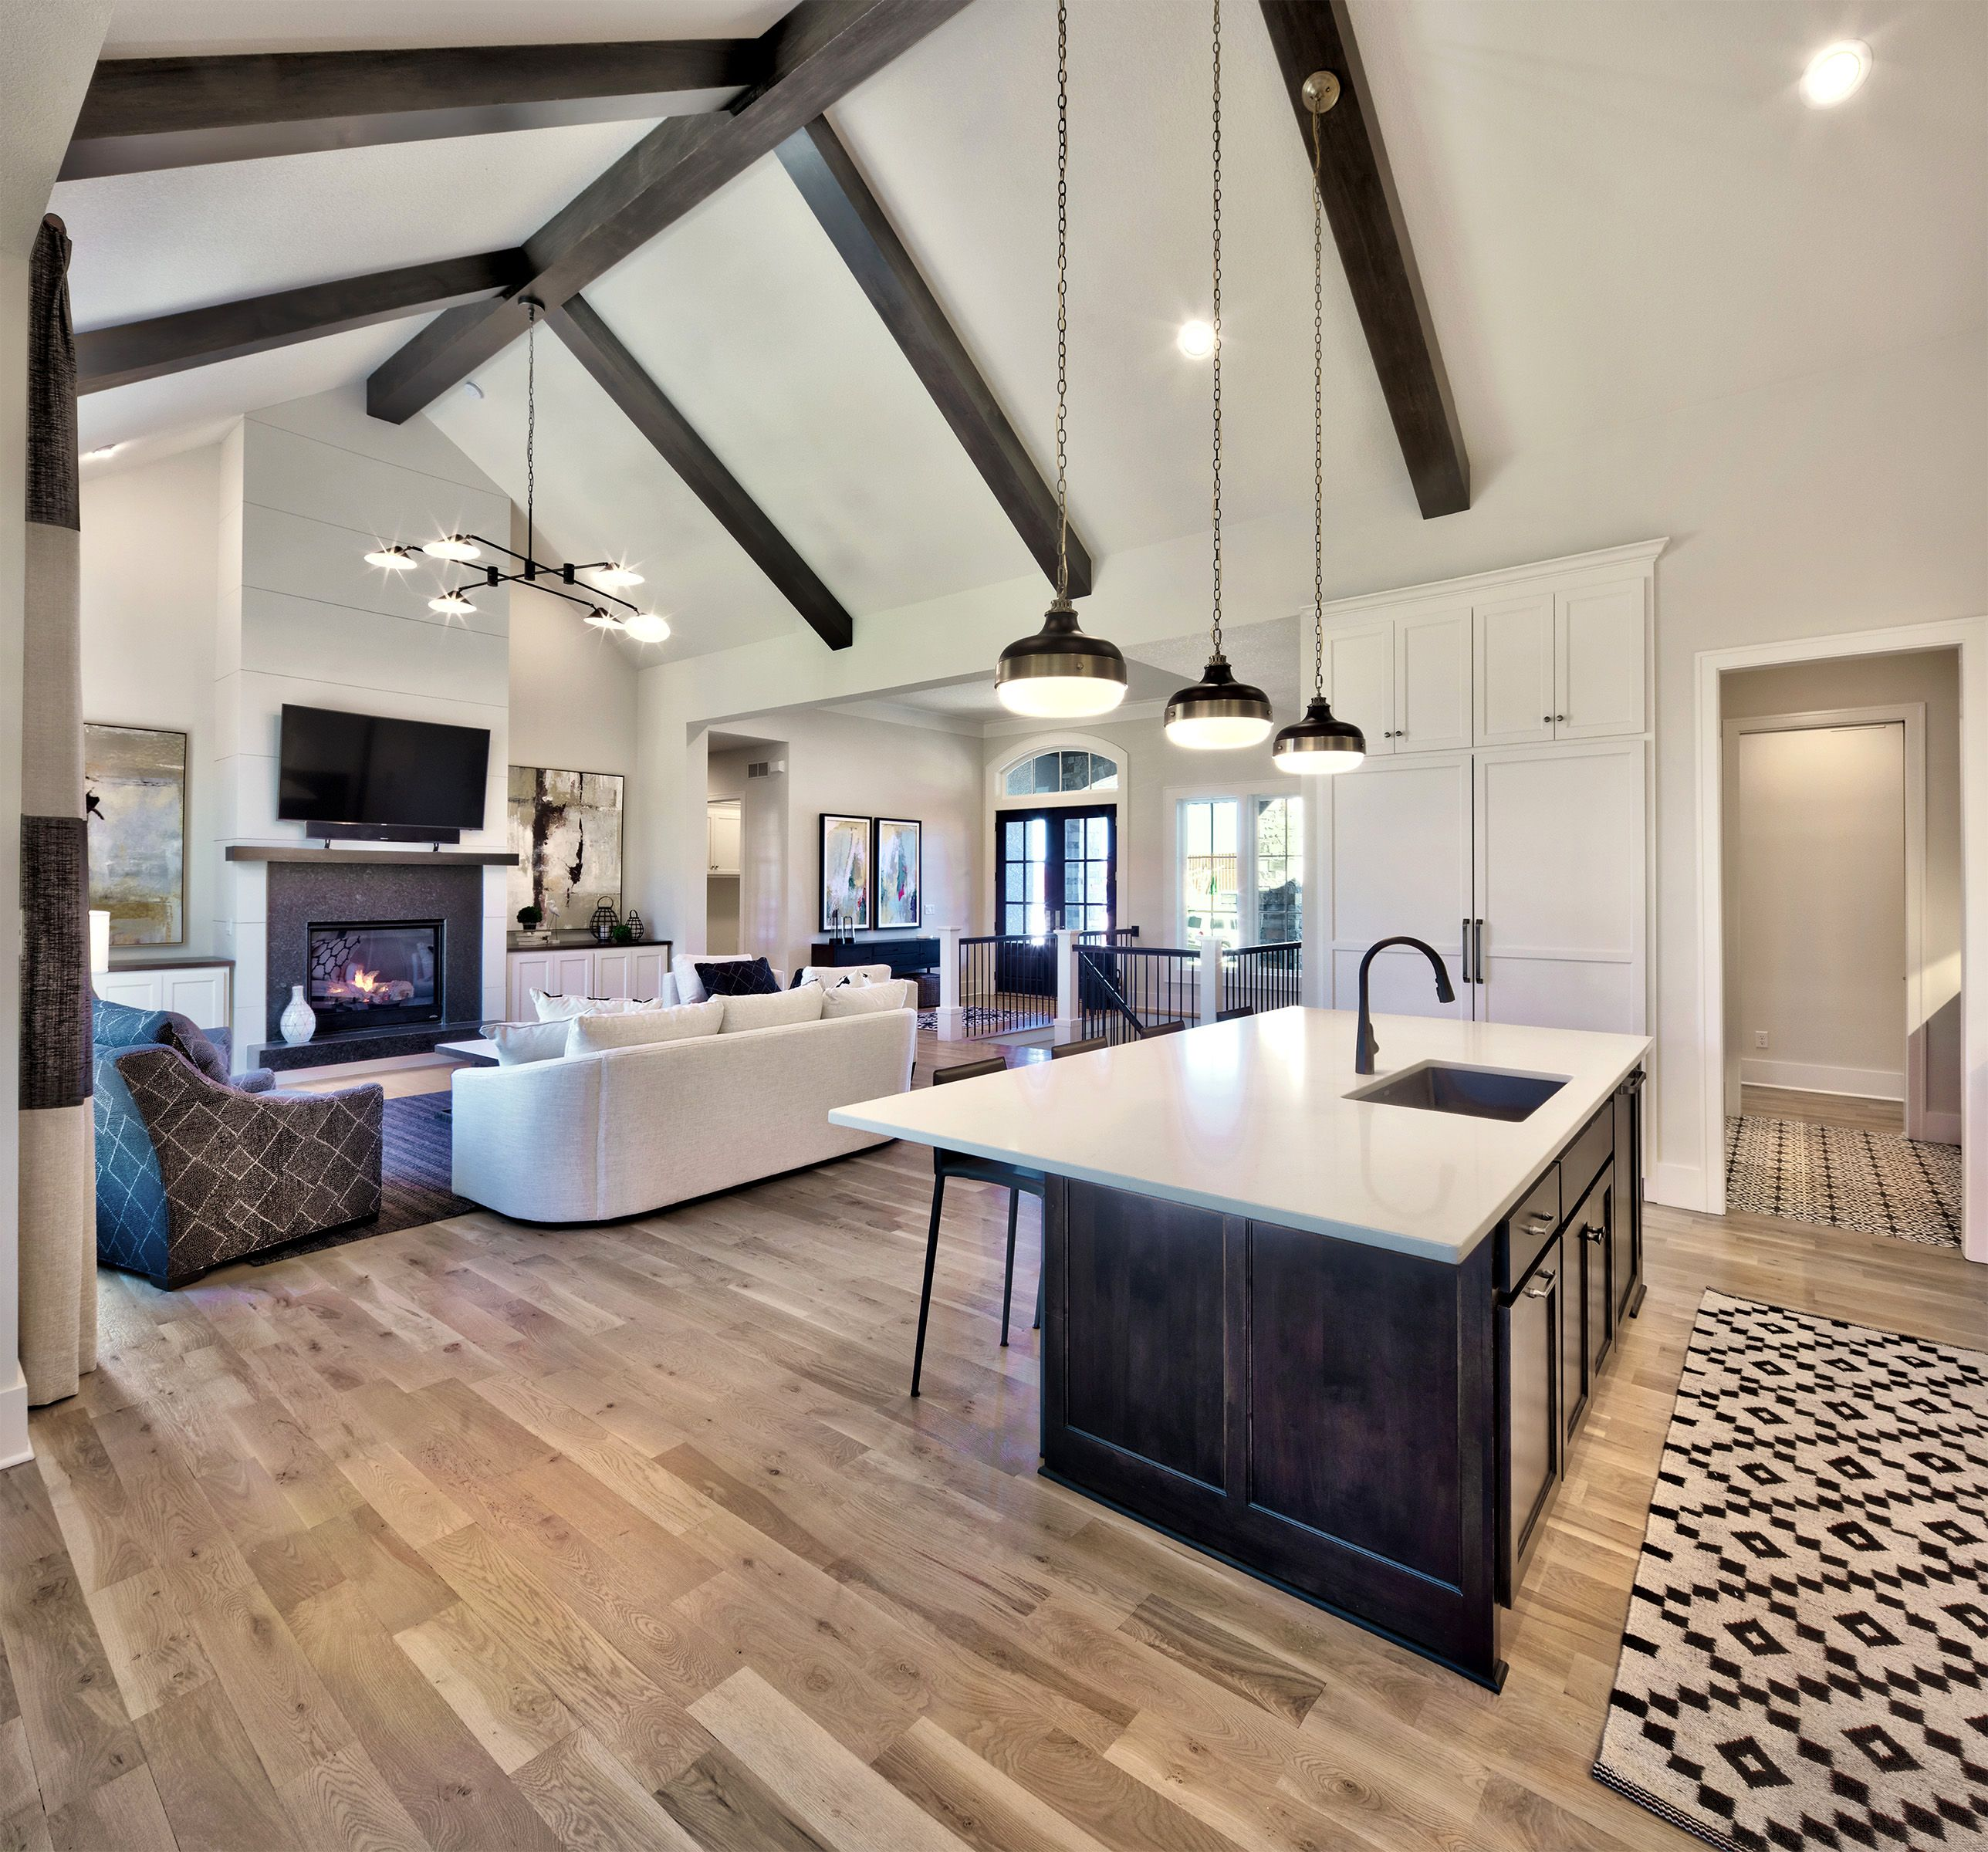 Open Concept Home Kitchen And Living Room With Tall Ceilings And